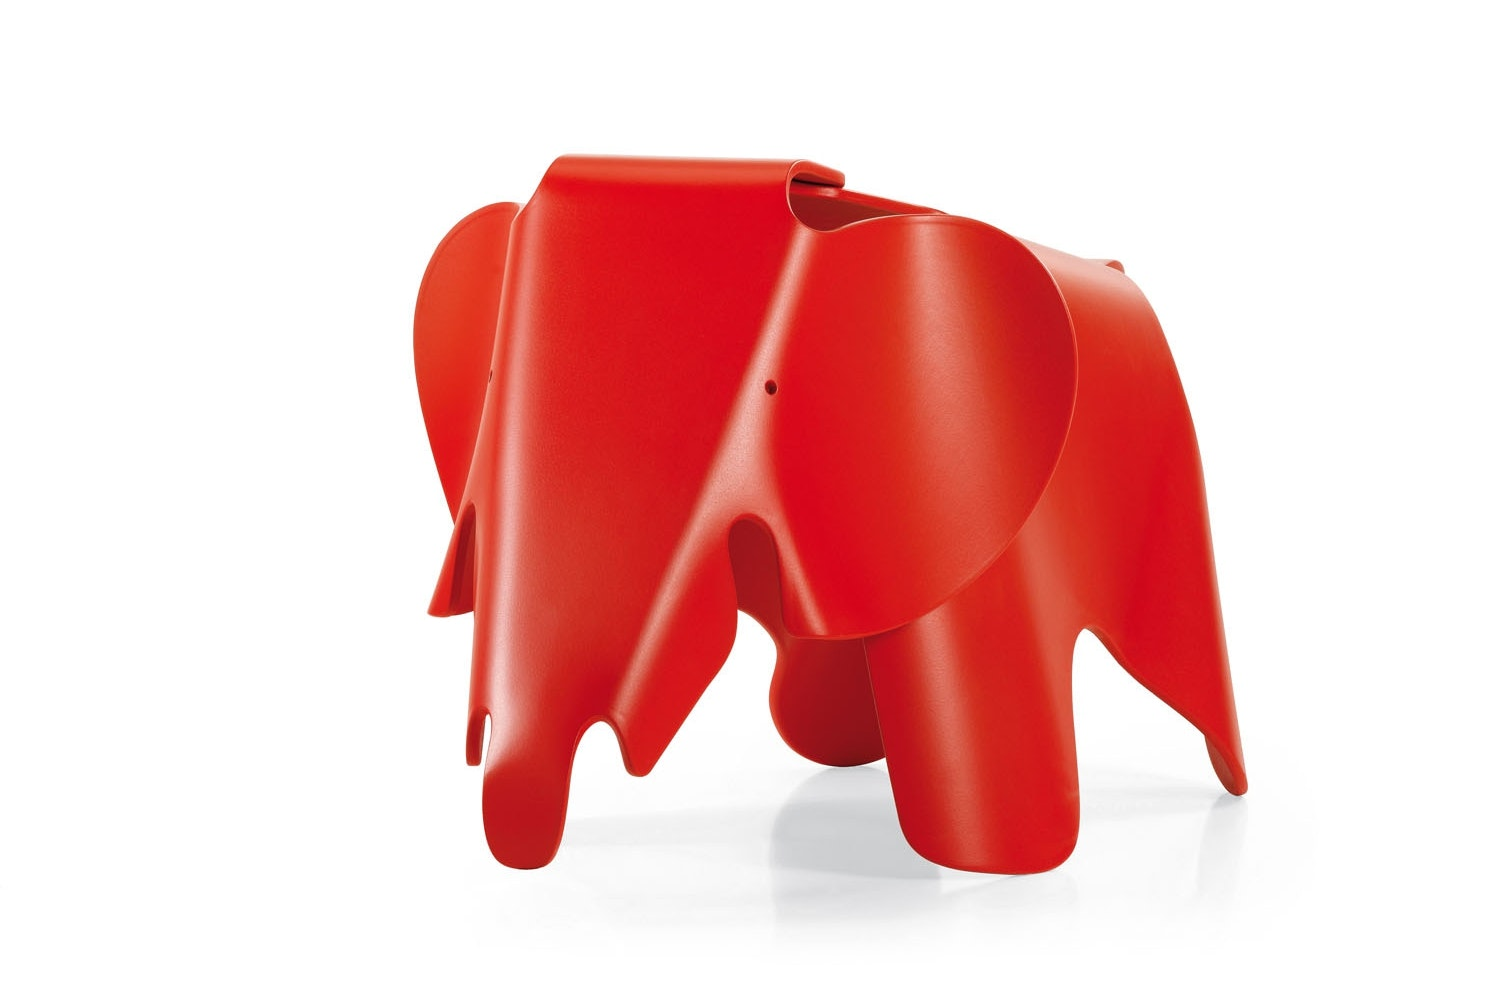 Eames Elephant by Charles & Ray Eames for Vitra